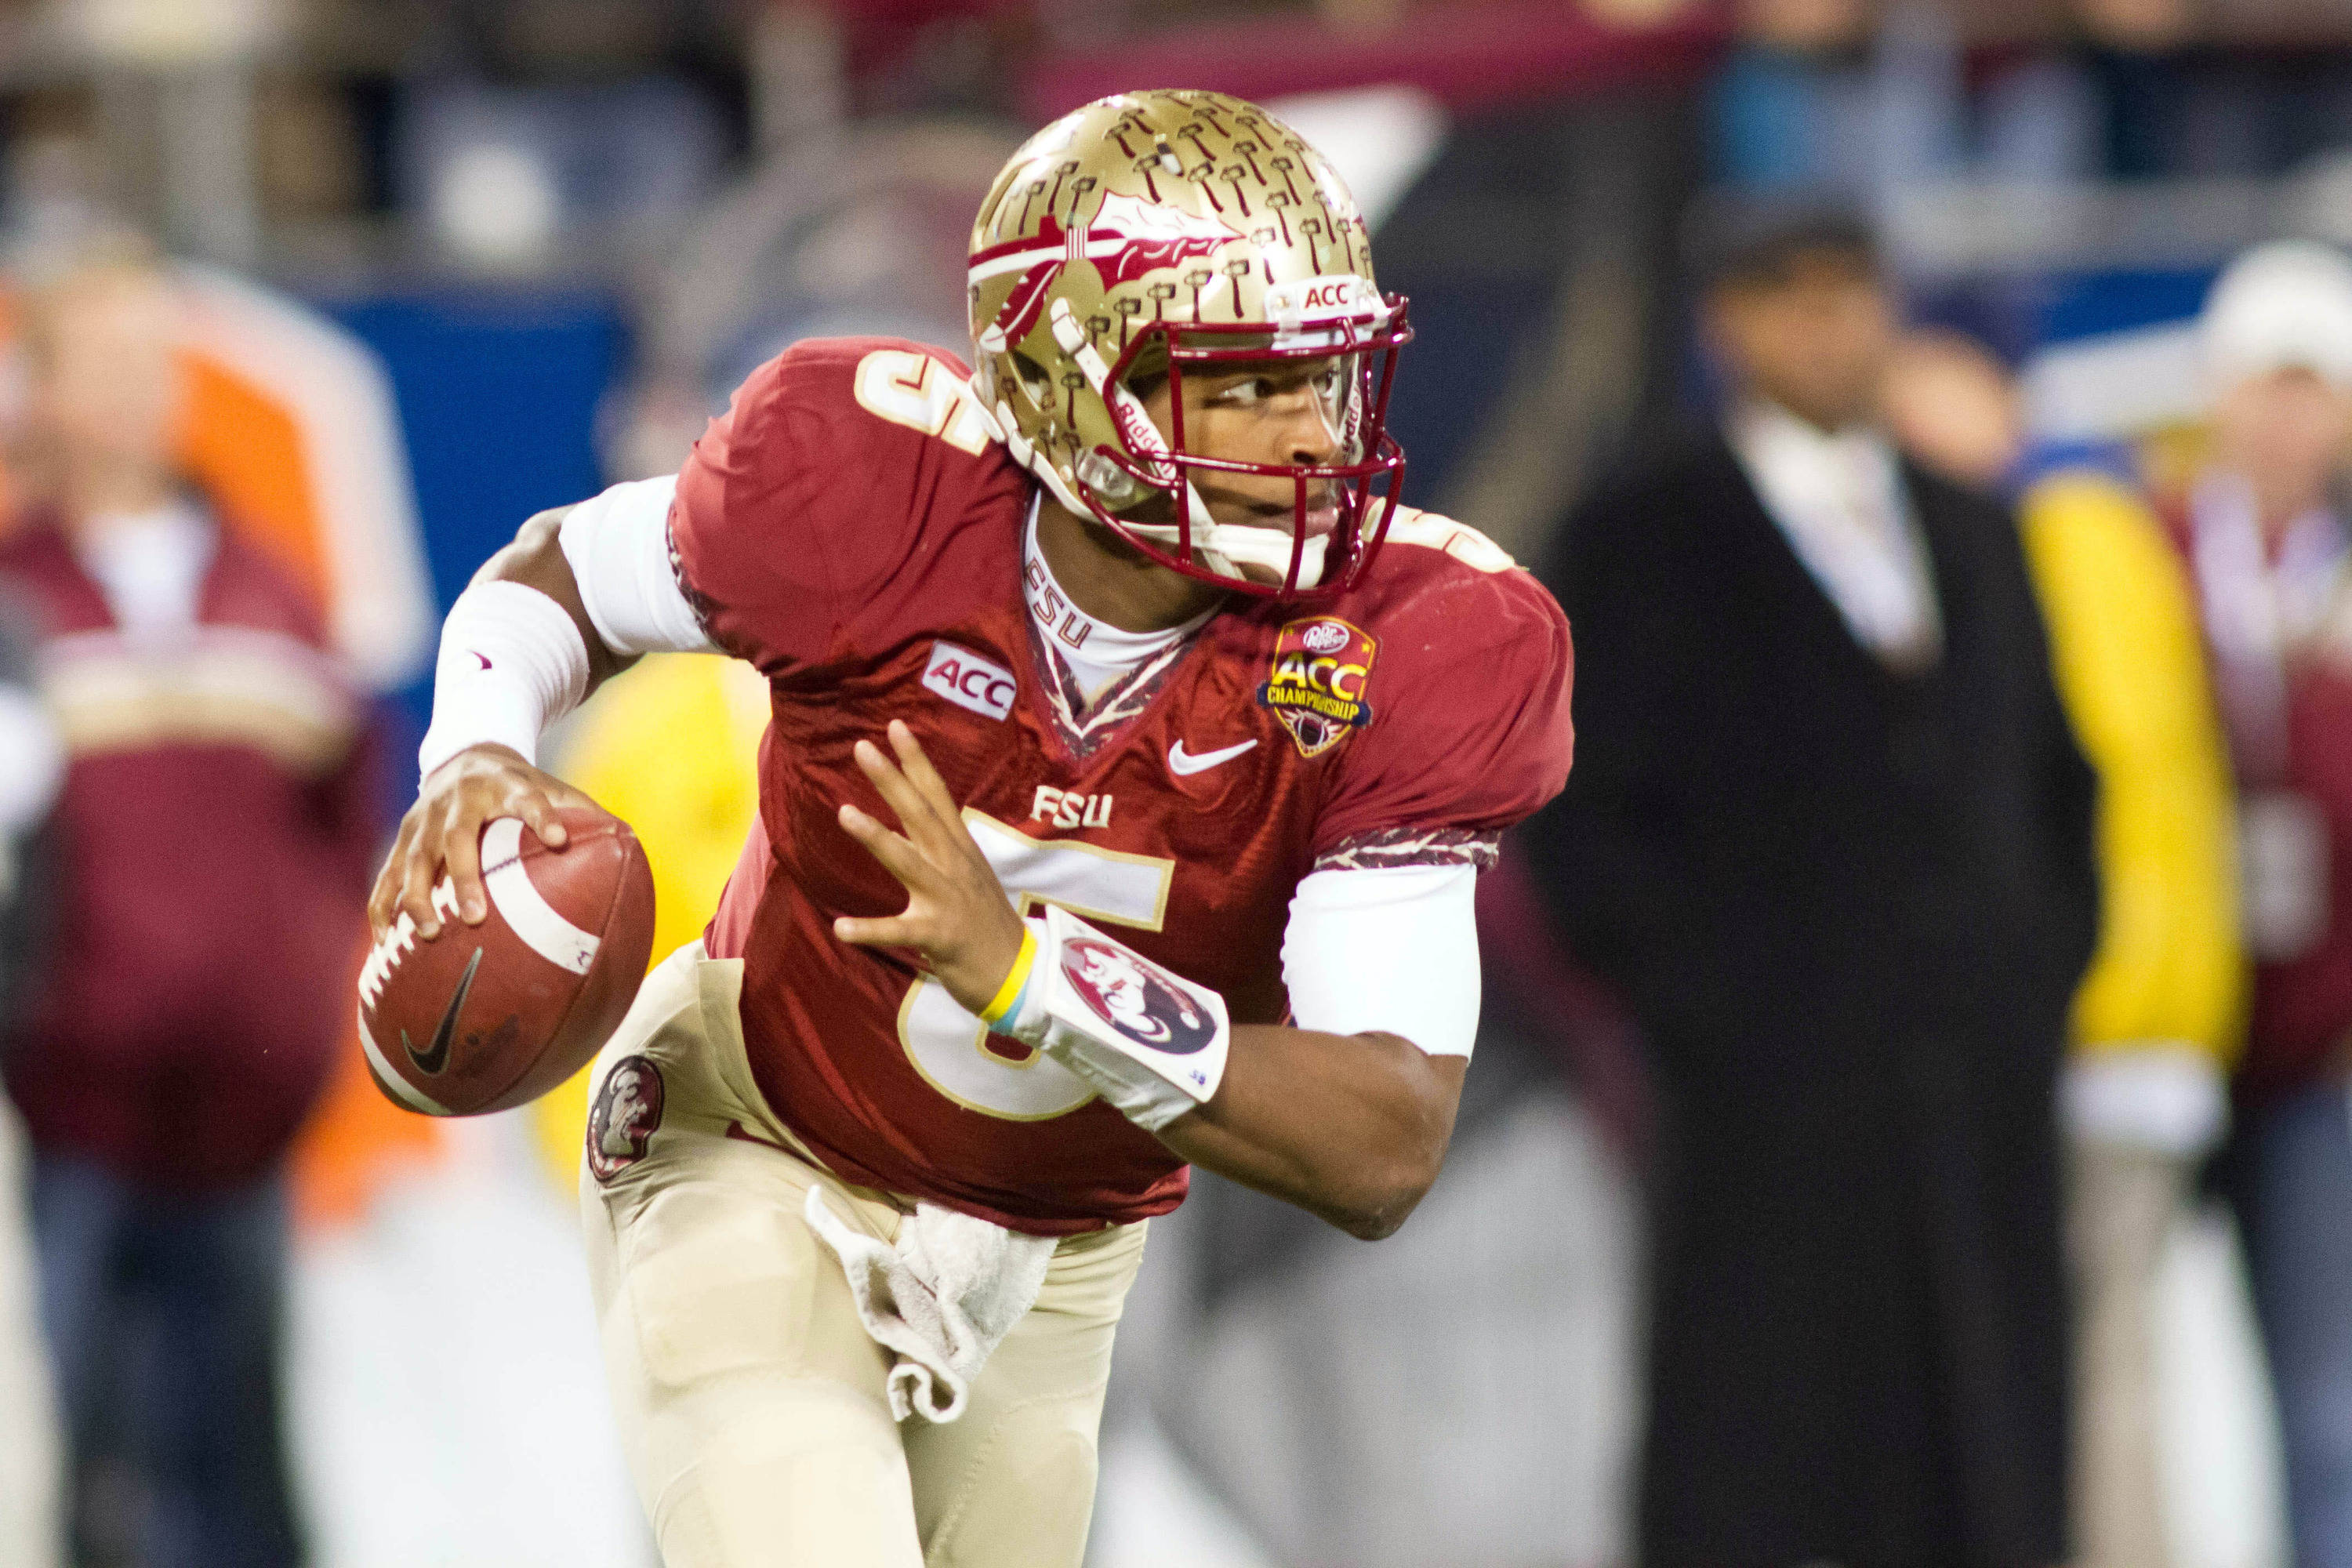 Dec 7, 2013; Charlotte, NC, USA; Florida State Seminoles quarterback Jameis Winston (5) runs the ball during the first quarter against the Duke Blue Devils at Bank of America Stadium. Mandatory Credit: Jeremy Brevard-USA TODAY Sports